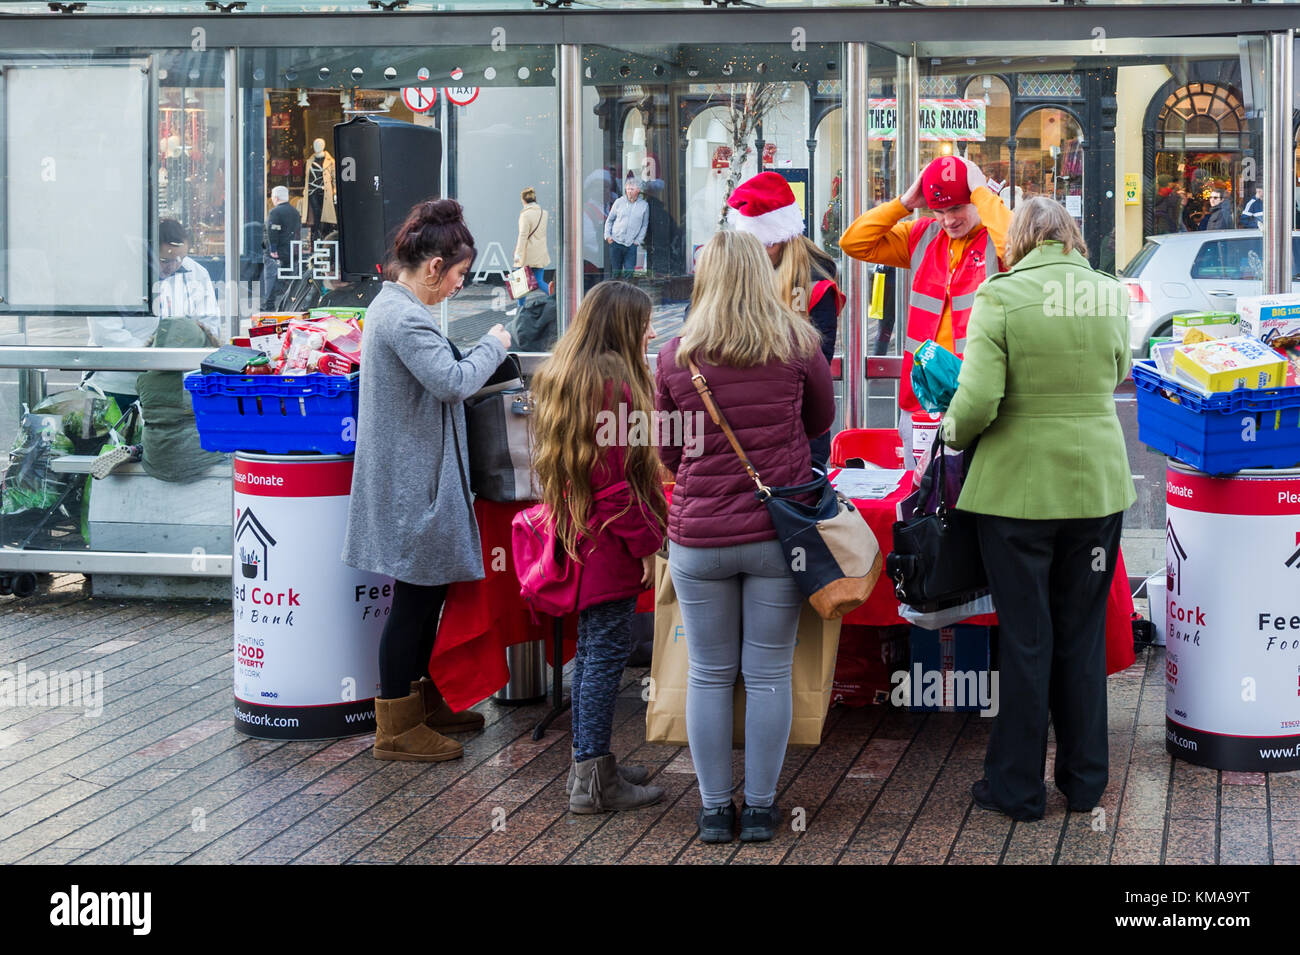 Food bank staffed by volunteers dishing out hot chocolate drinks in Patrick Street, Cork, Ireland. - Stock Image